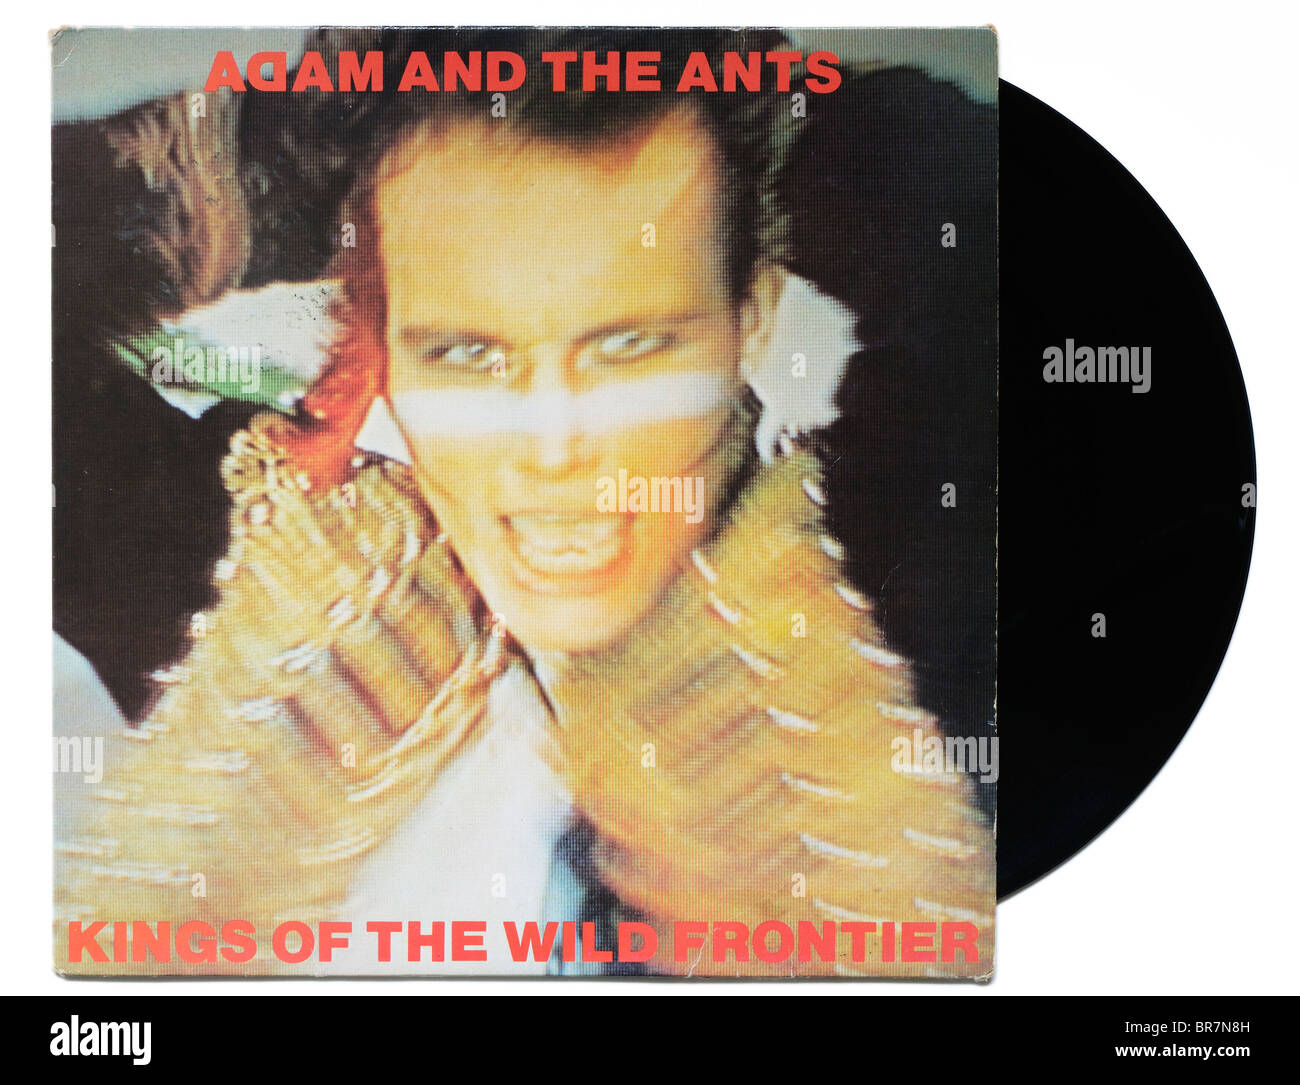 Adam and the Ants Kings of the Wild Frontier album - Stock Image